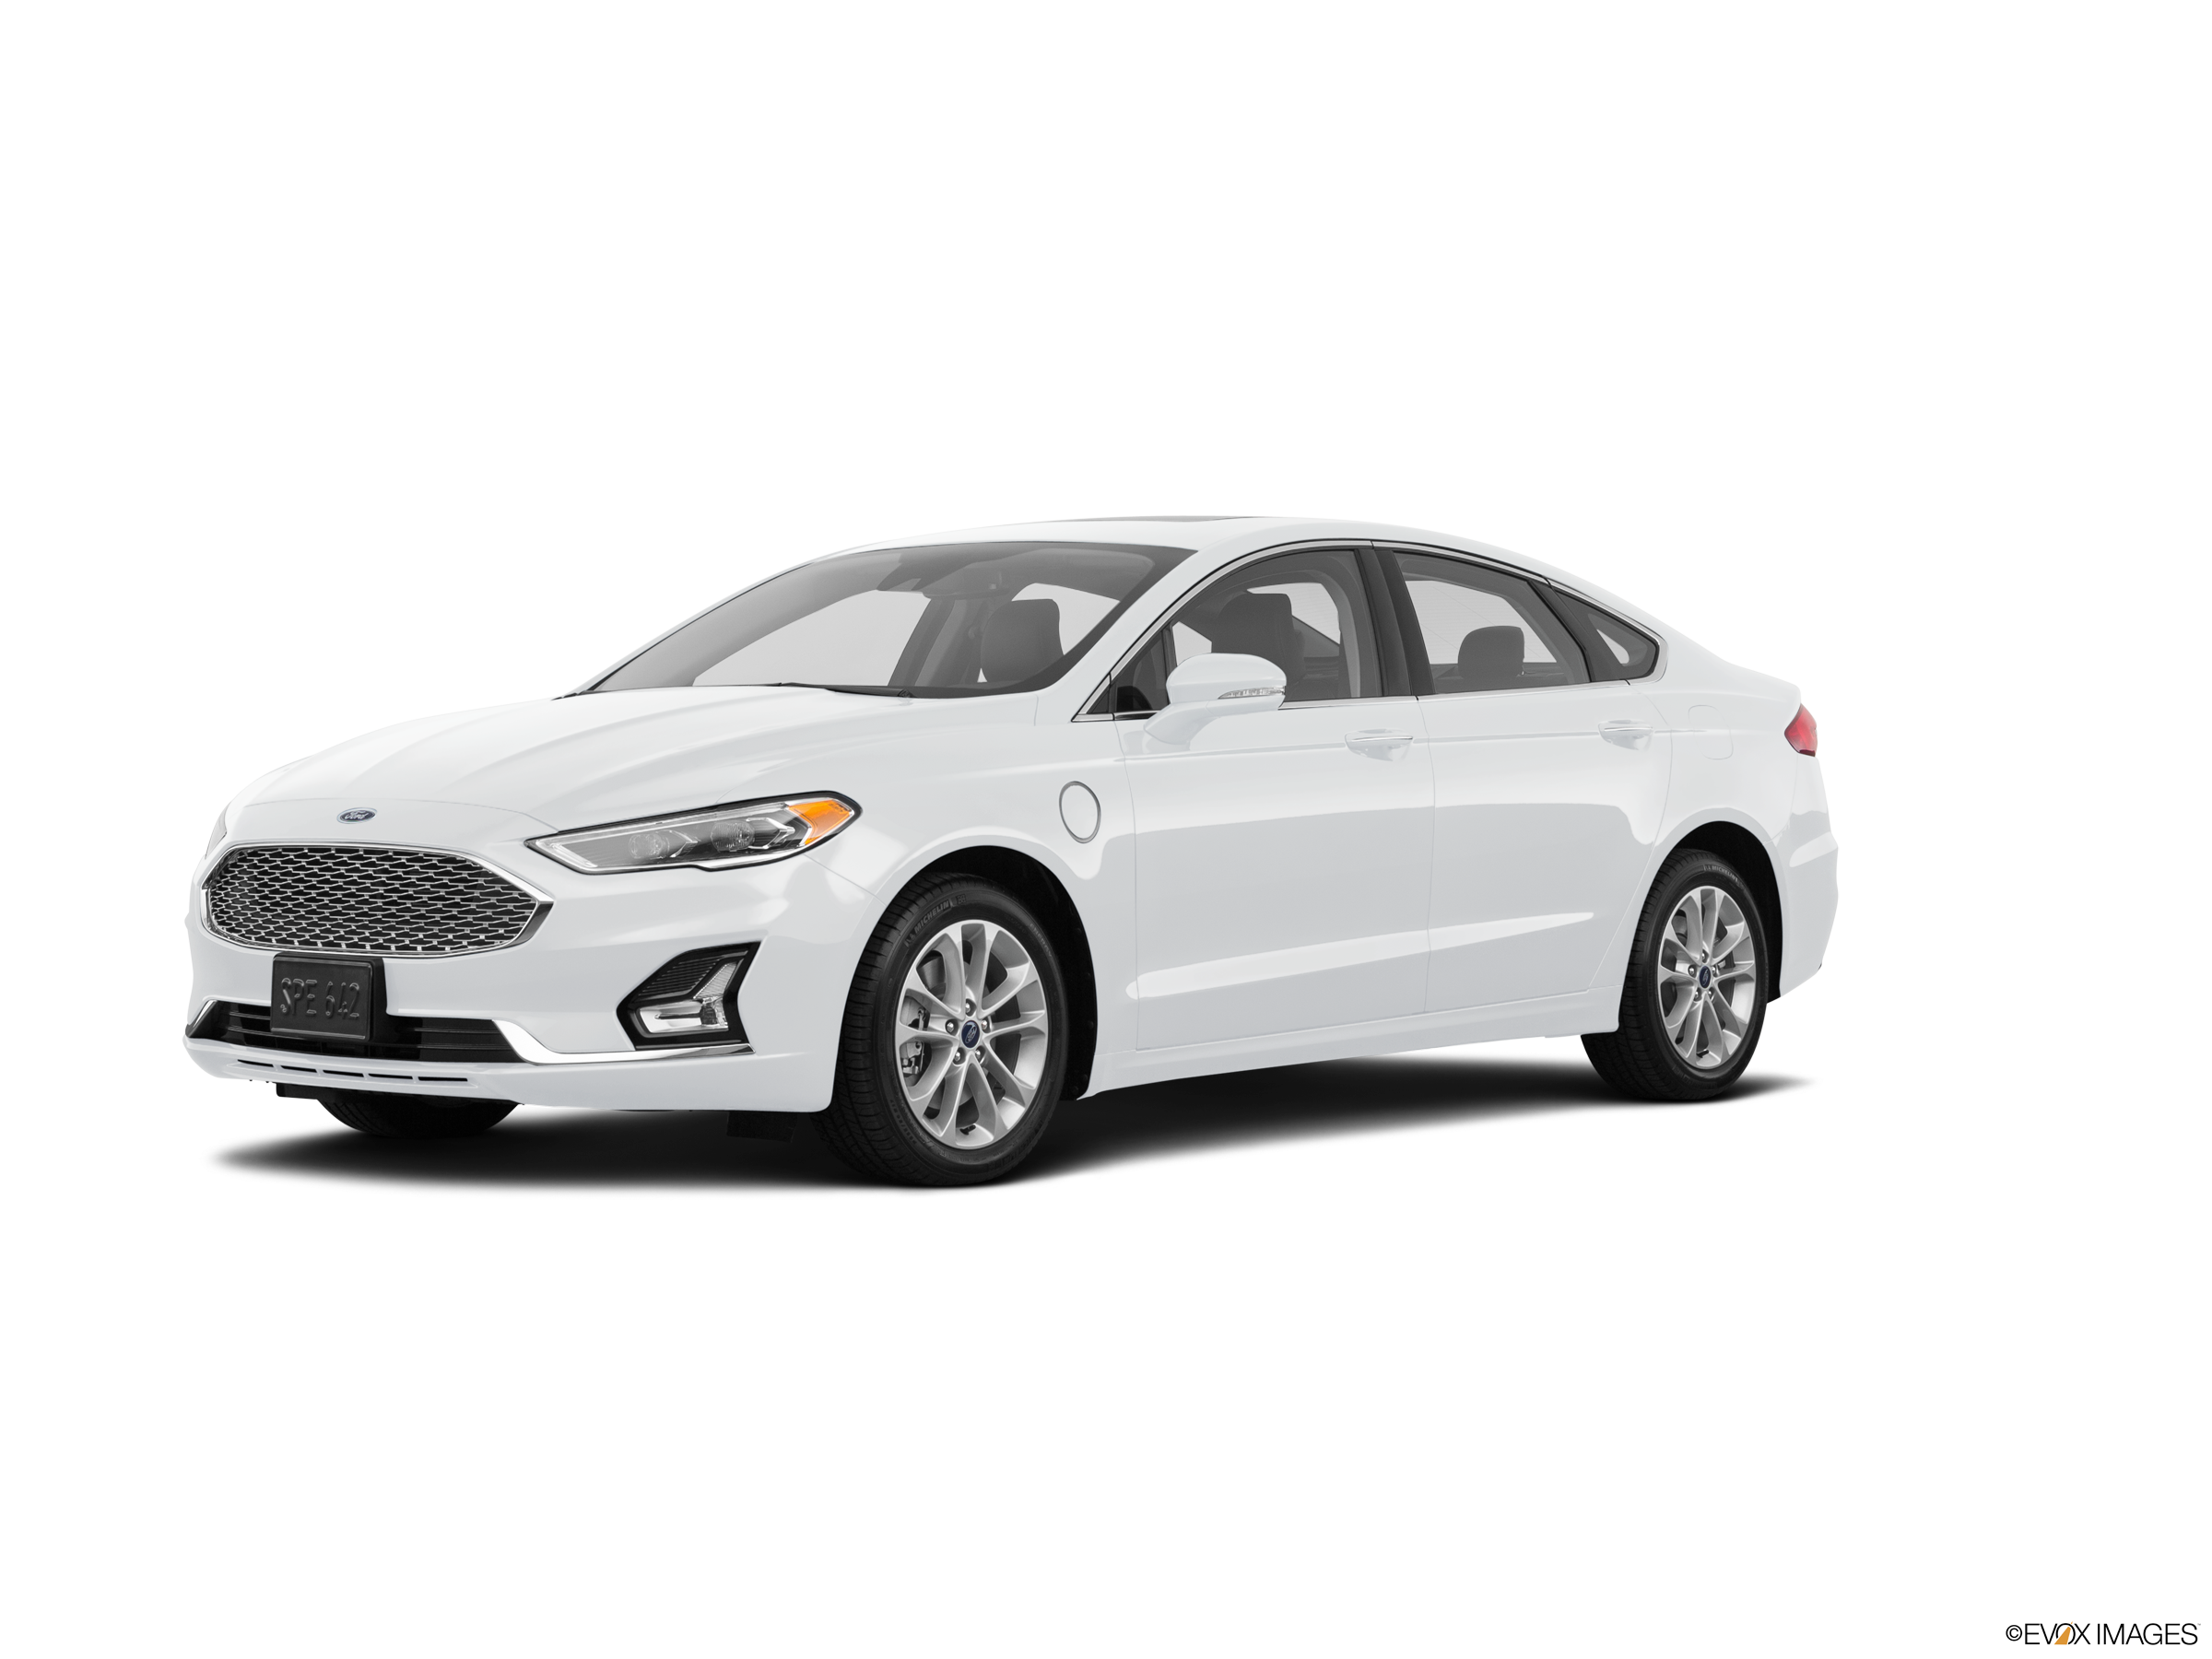 Top Consumer Rated Electric Cars of 2019 - 2019 Ford Fusion Energi